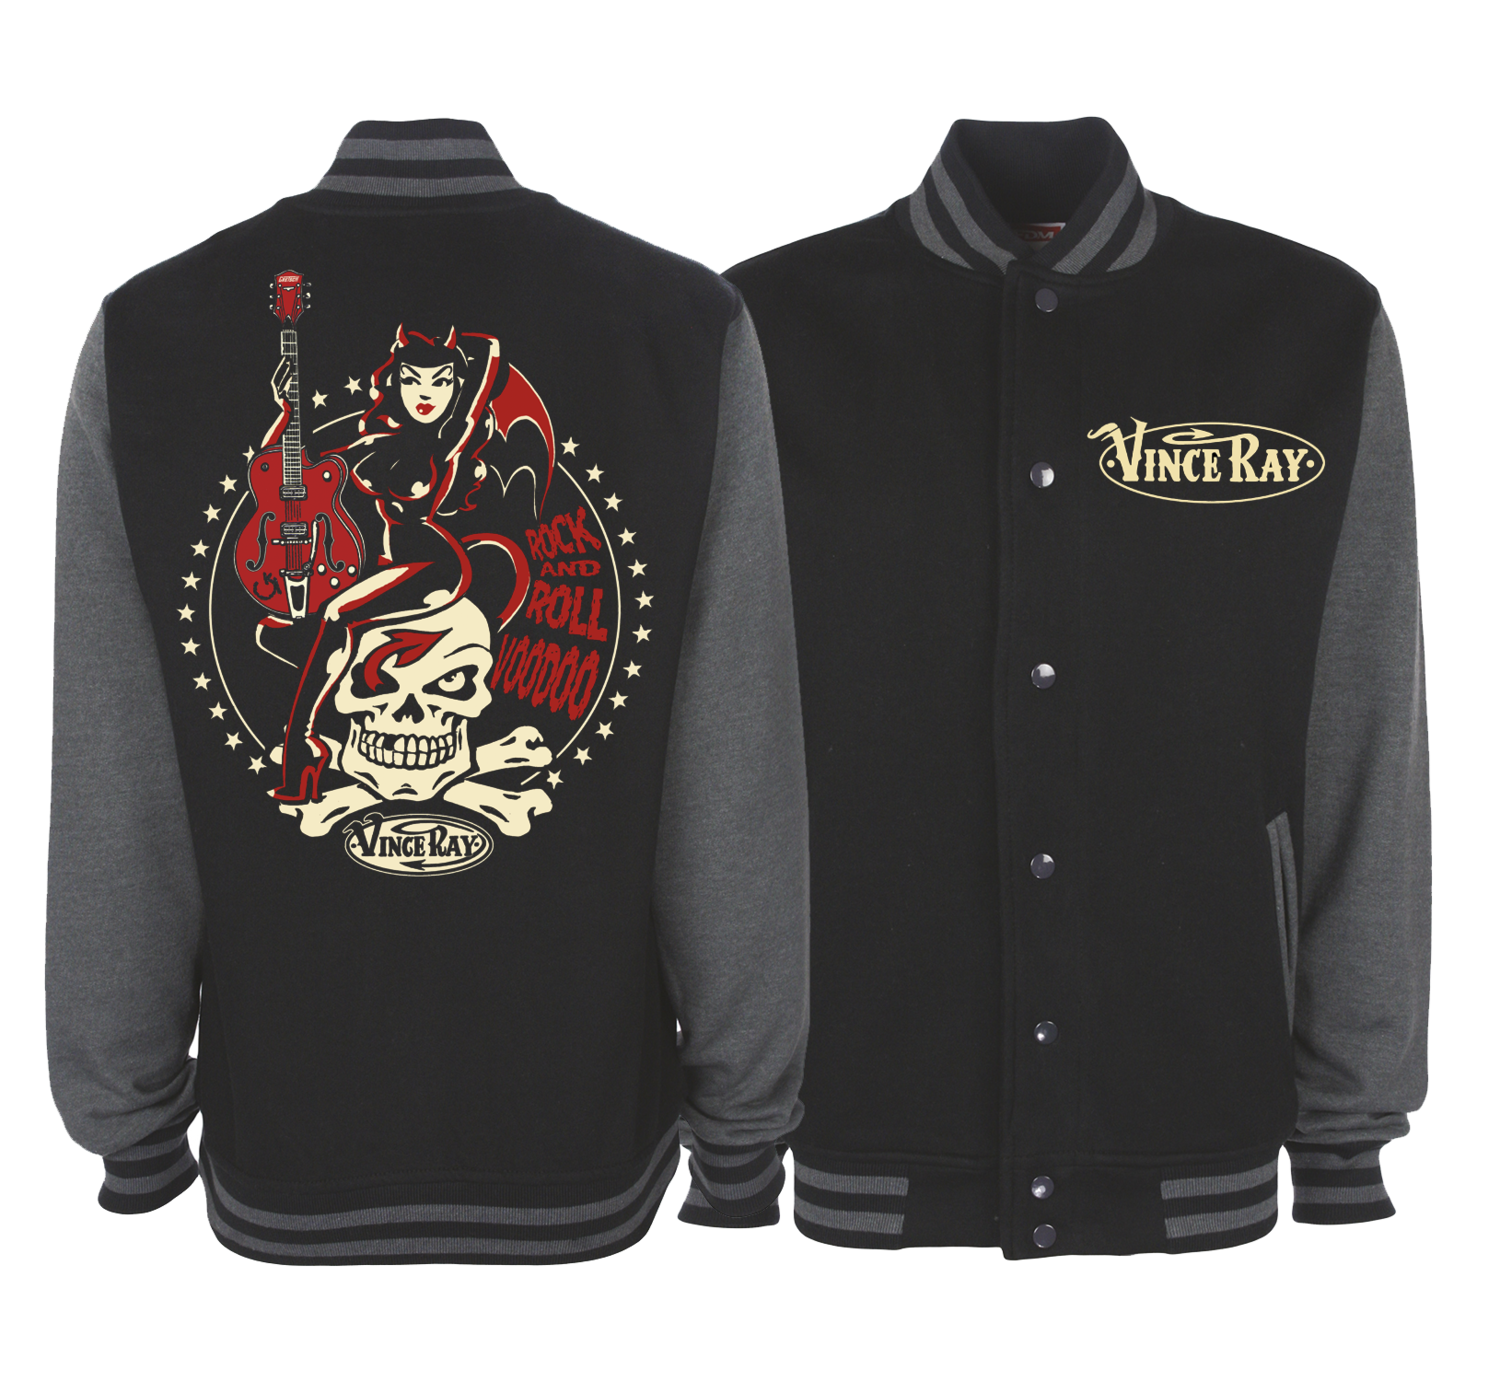 ROCK AND ROLL VOODOO VARSITY JACKET Unisex by VINCE RAY